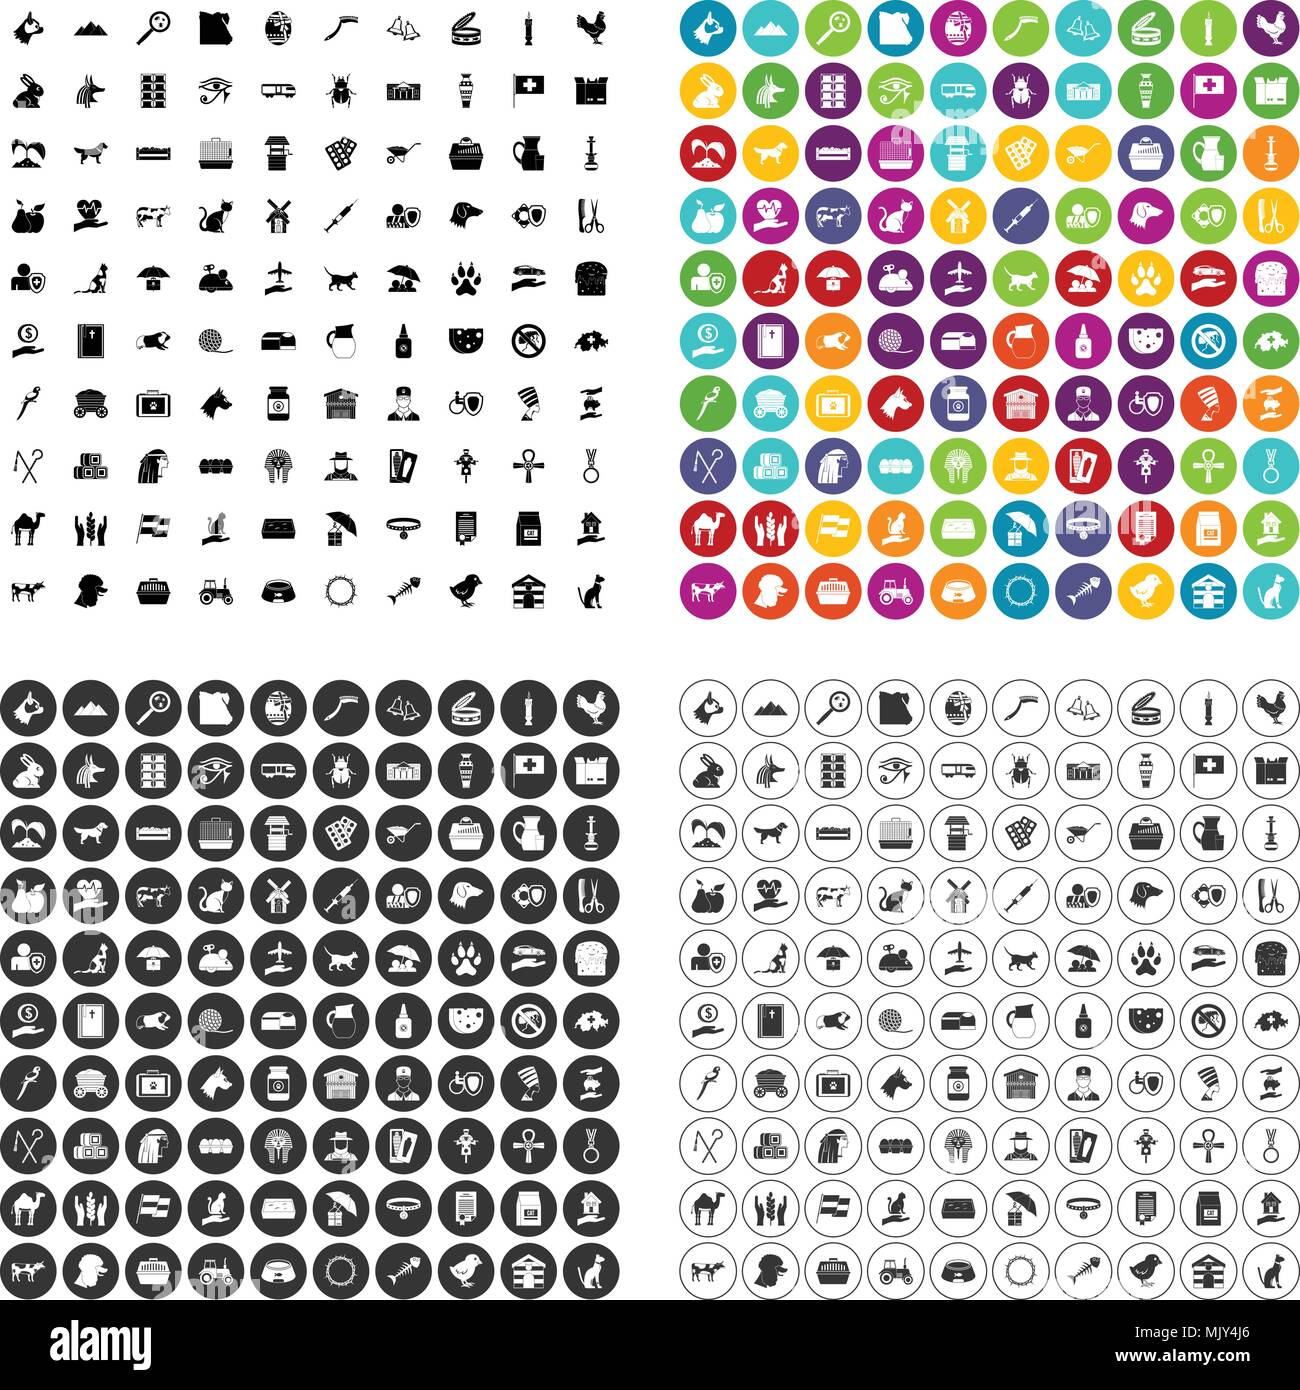 100 pets icons set vector variant - Stock Image